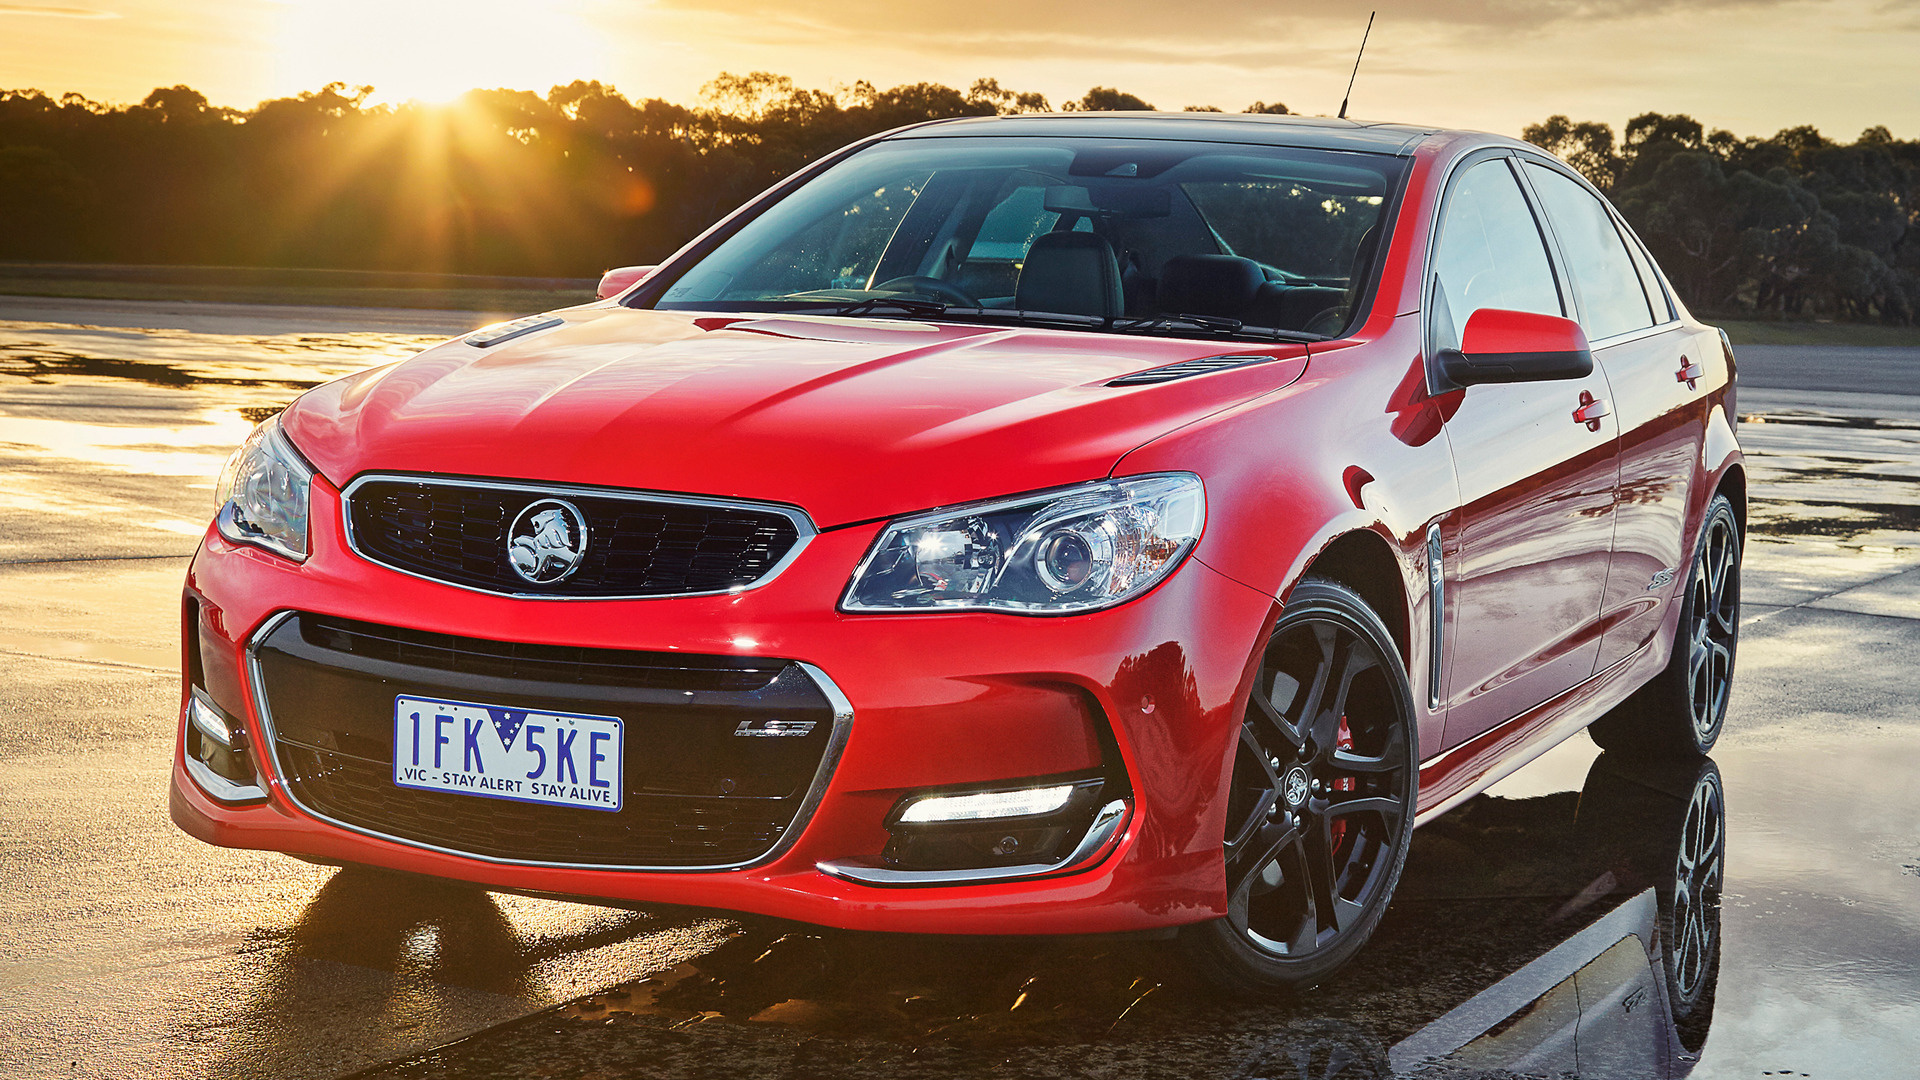 Holden Commodore Ss V Redline 2015 Wallpapers And Hd